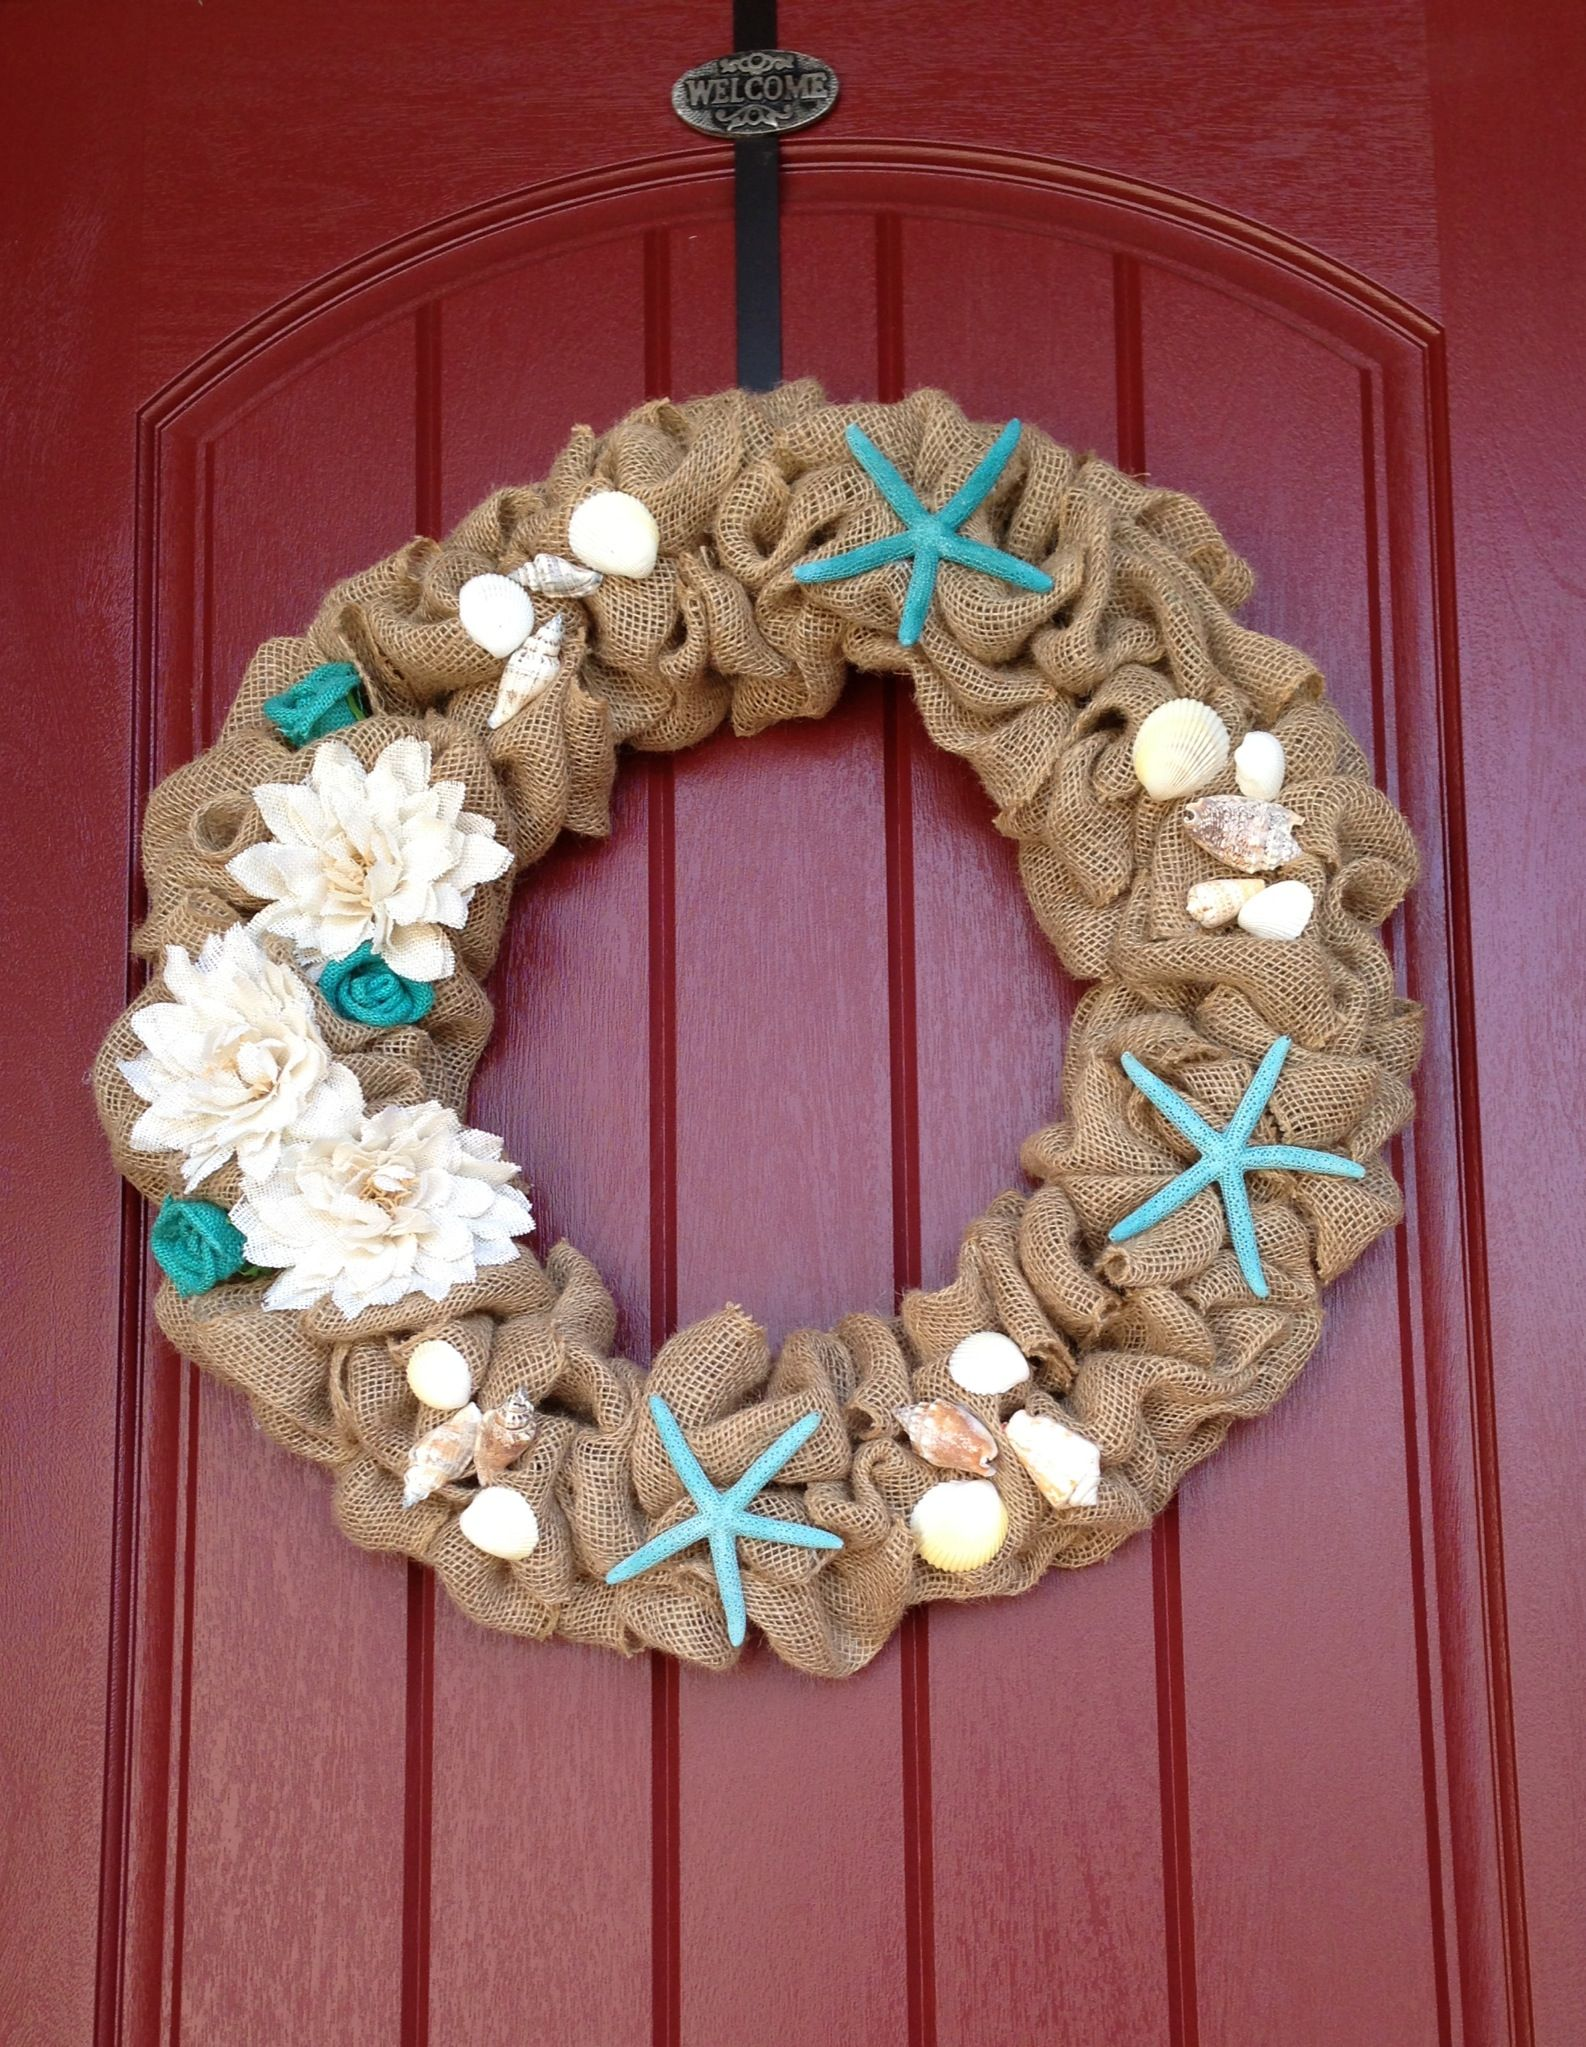 Pin by Carrie Menge on Wreaths   Seashell crafts, Diy ...